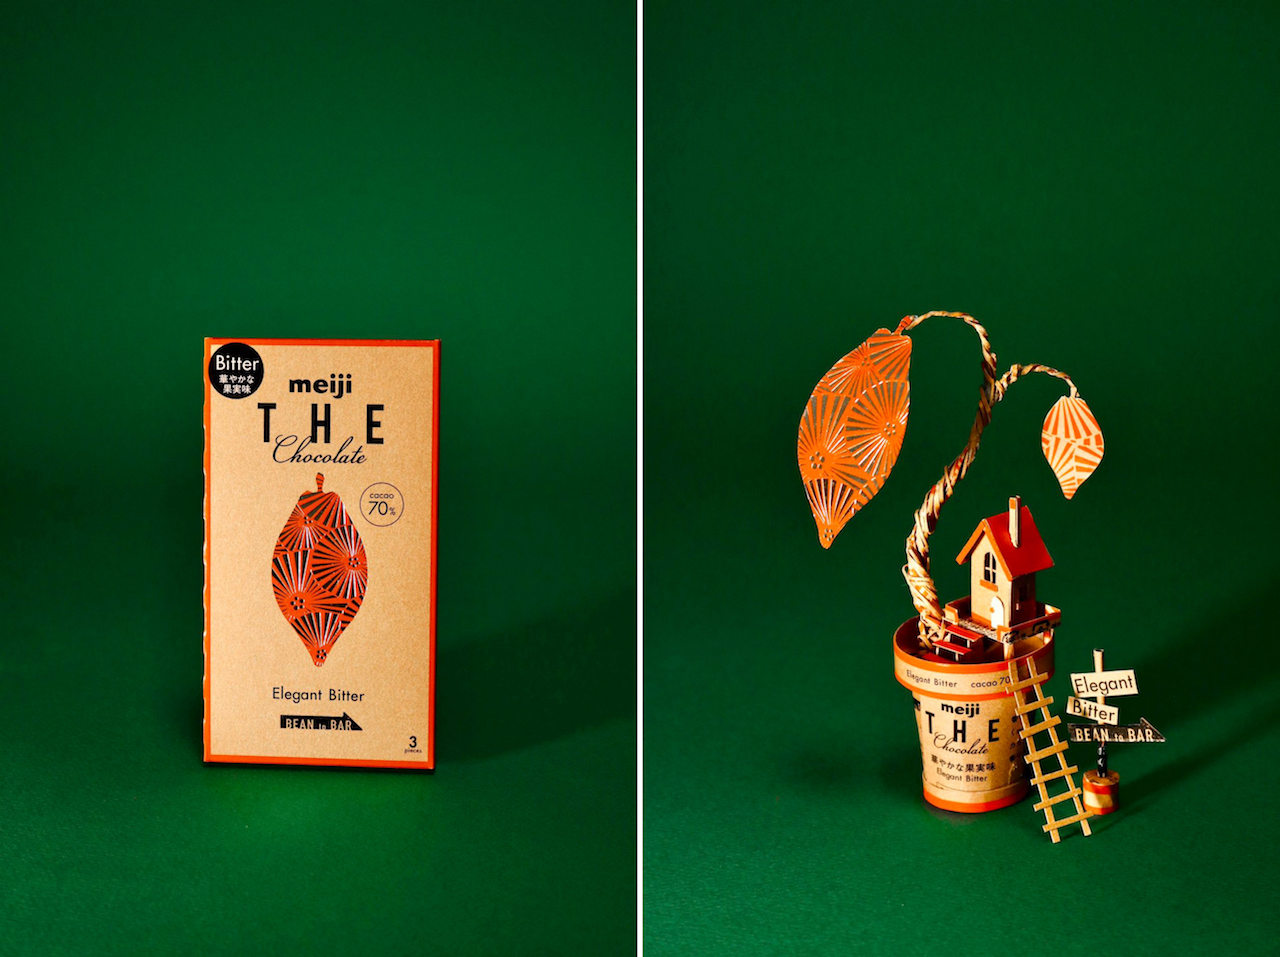 Product Packaging Turned Into Art - 20